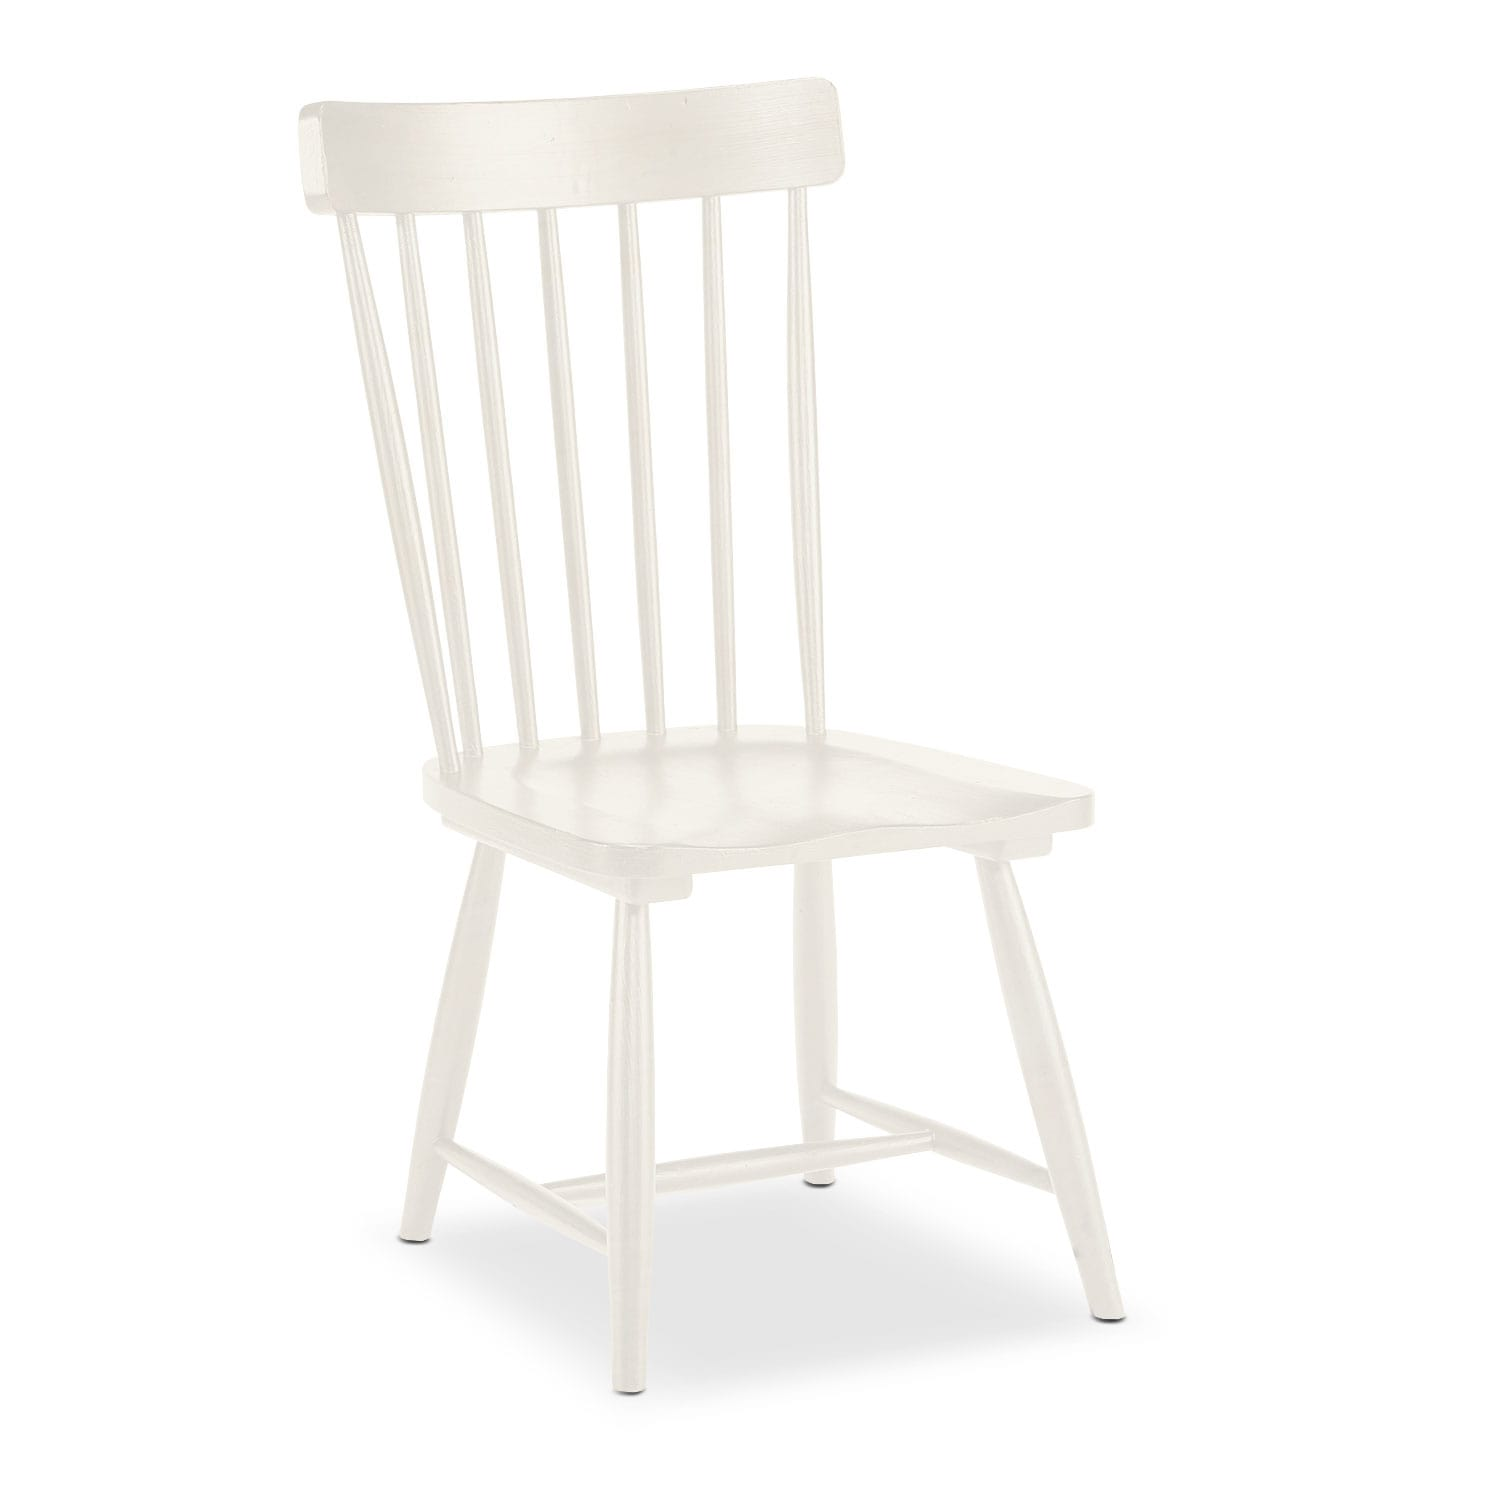 Set of 2 Farmhouse Spindle Back Side Chairs - White